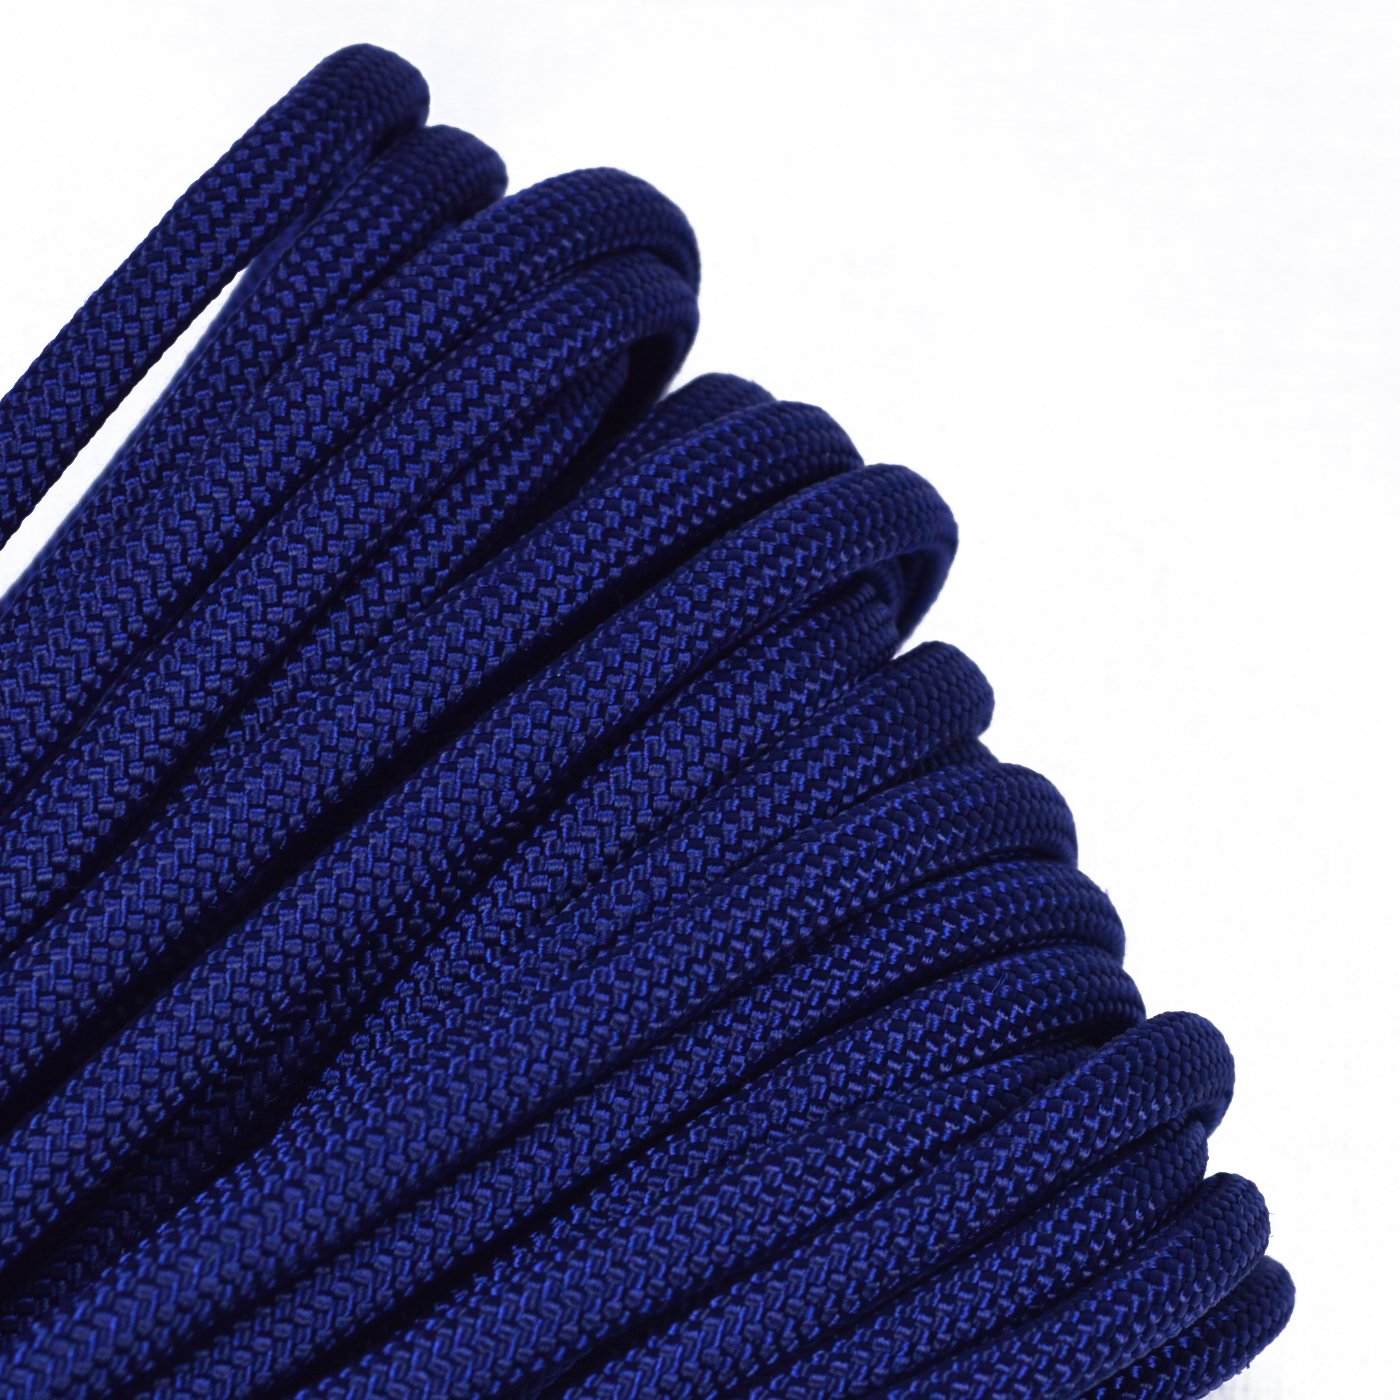 Acid Midnight Blue Mil-Spec Commercial Grade 550lb Type III Nylon Paracord - 100 Feet by Bored Paracord (Image #1)